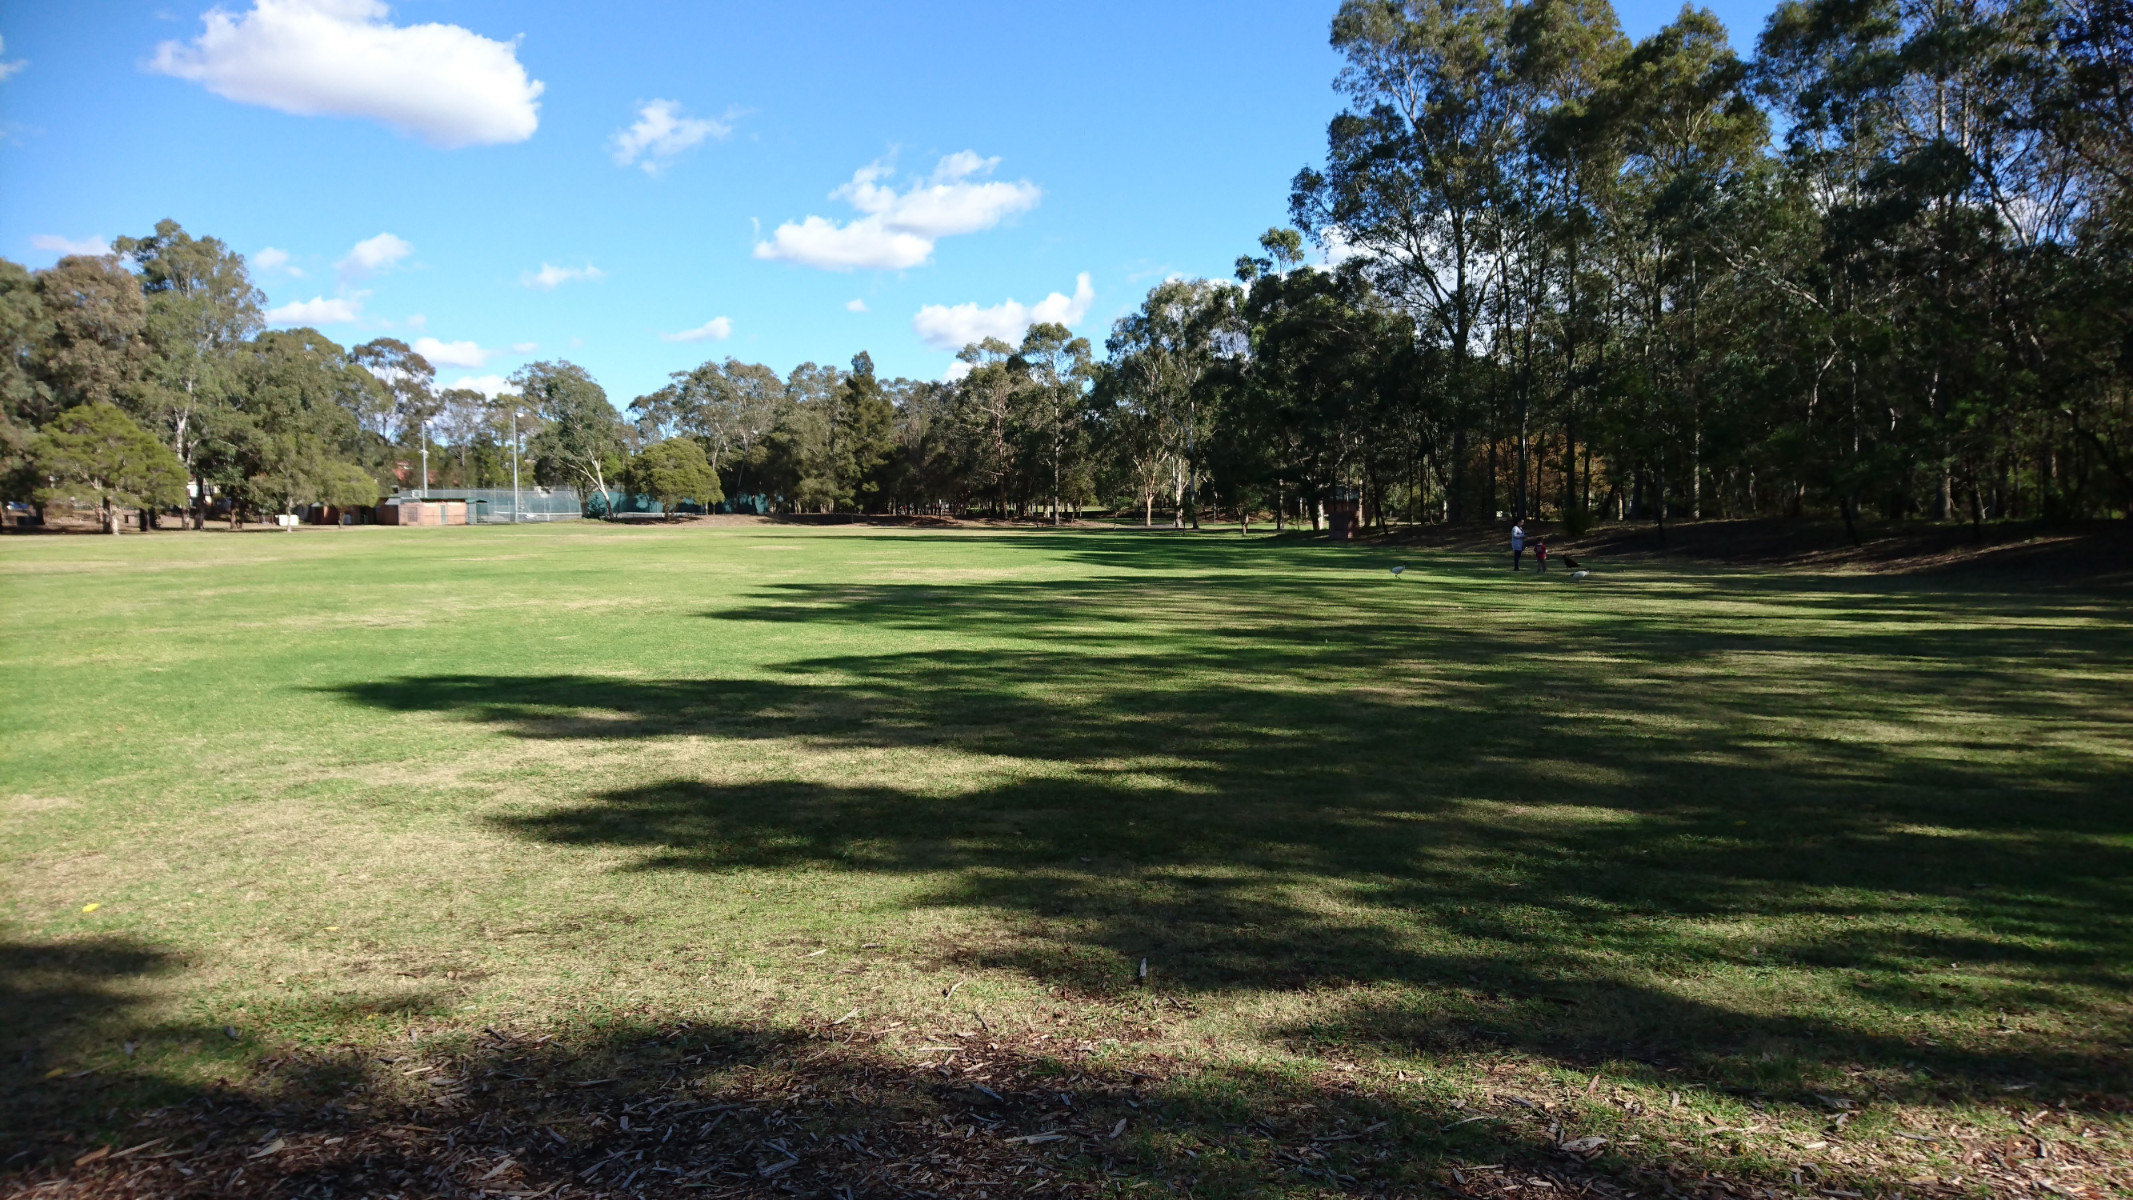 massive open grass - great for a group picnic or kicking a ball around